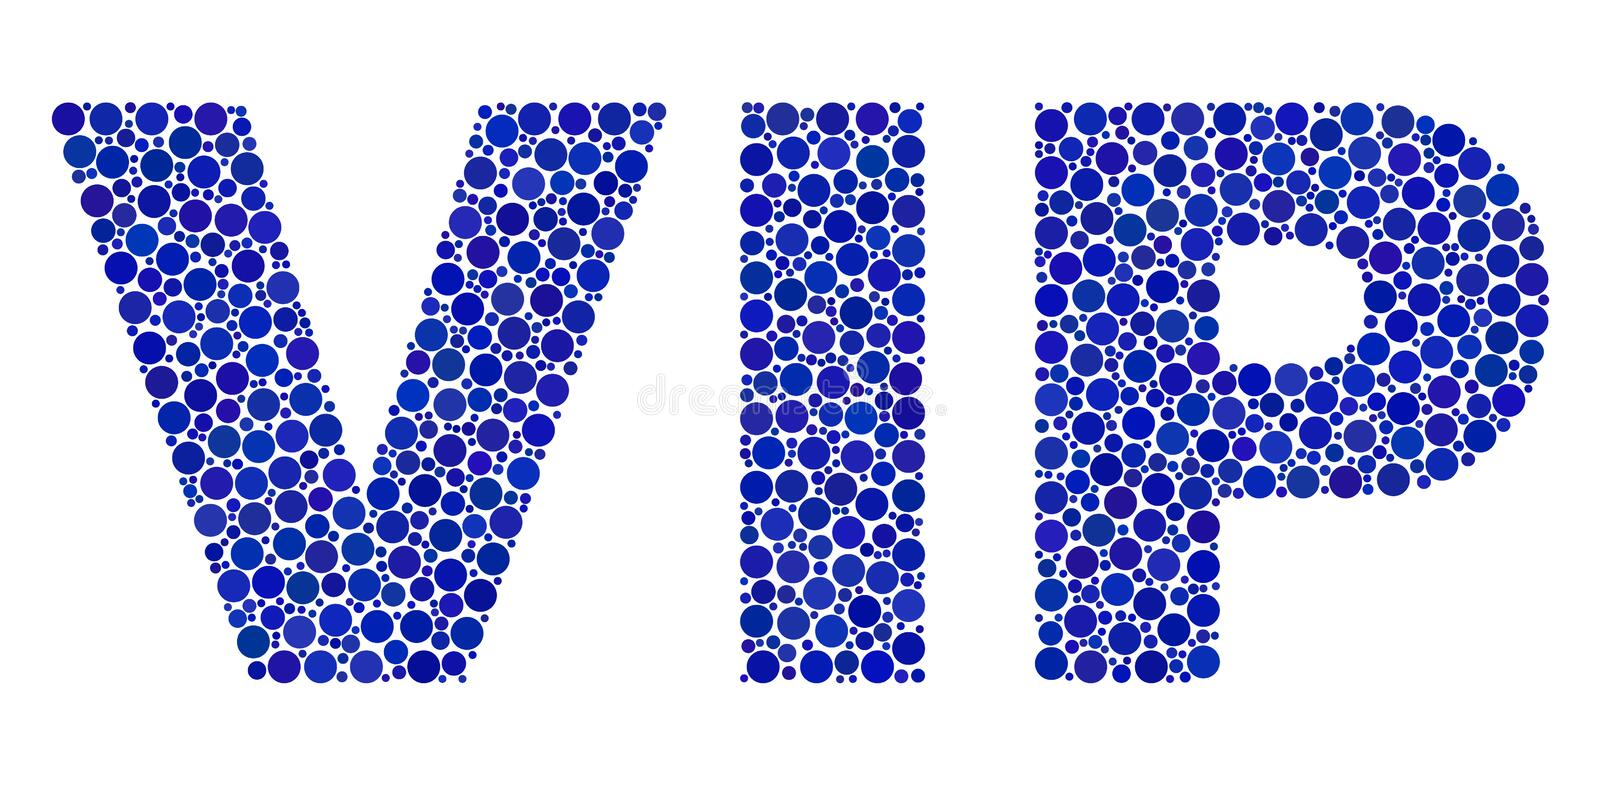 VIP Text in Dot Style. Dot vector Vip text isolated on a white background. Vip mosaic tag of circle dots in various sizes vector illustration